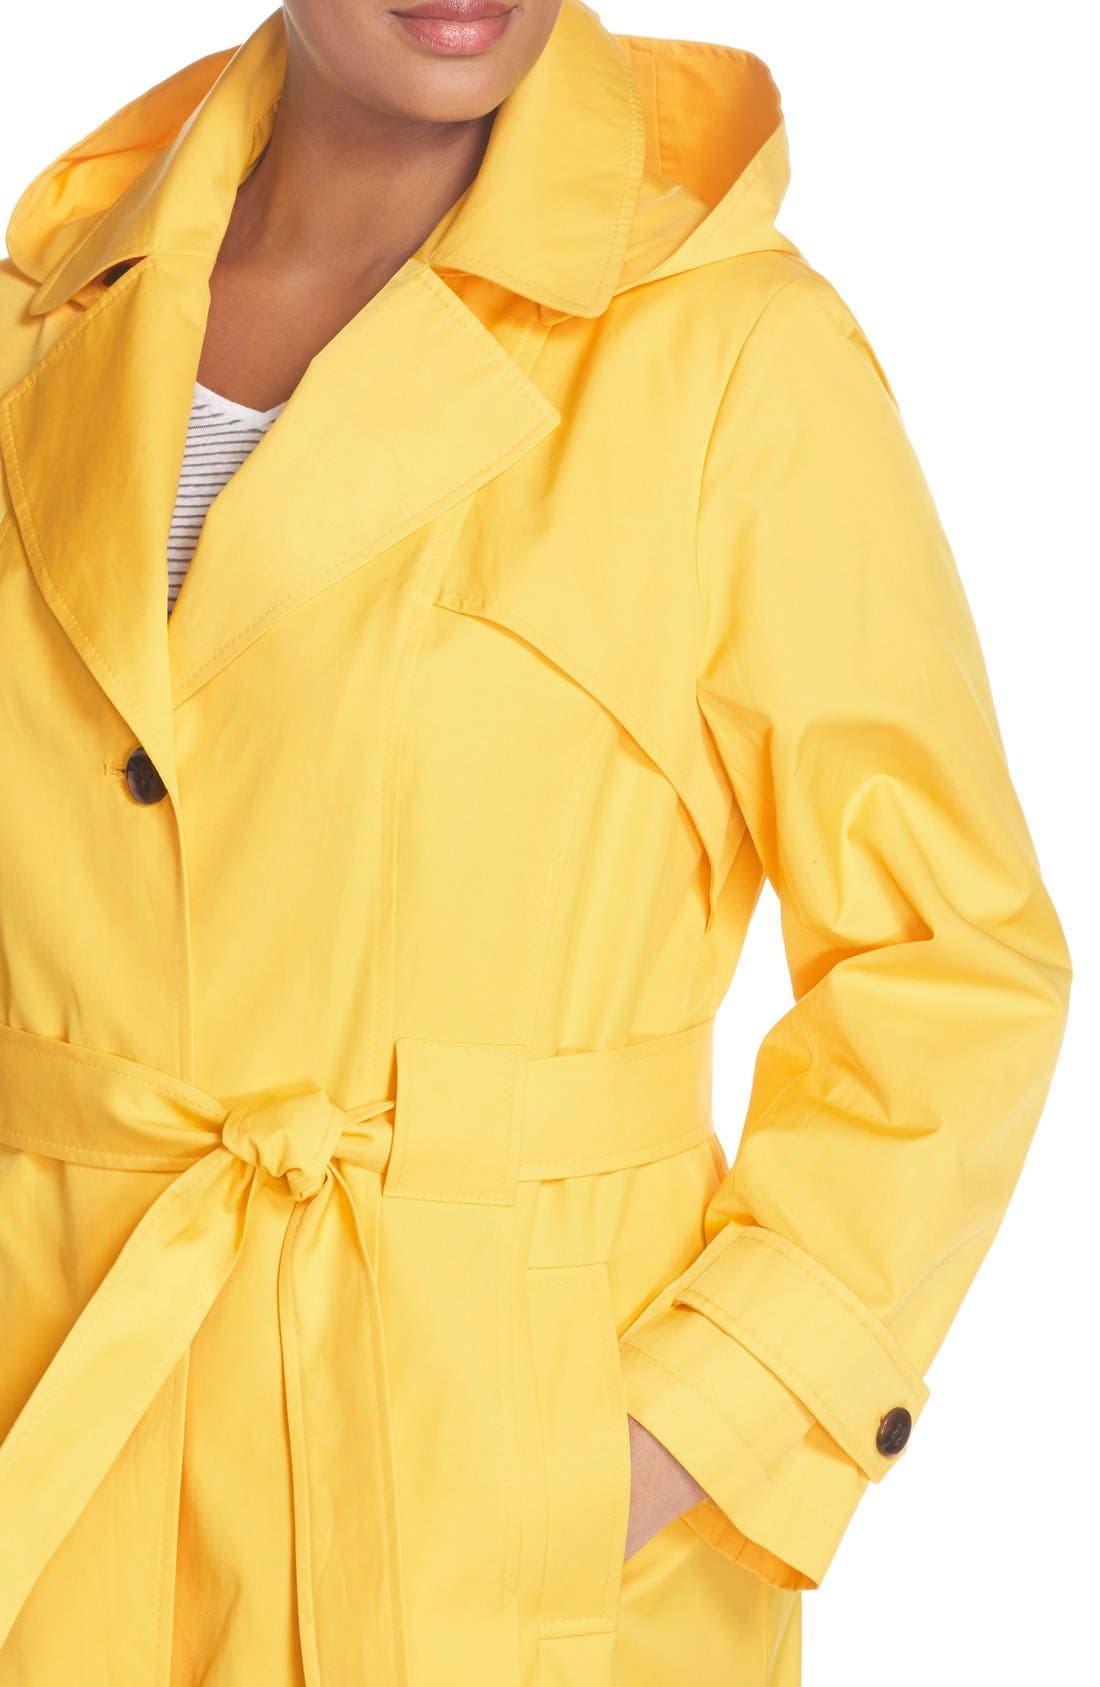 'Scarpa' Single Breasted Trench Coat,                             Alternate thumbnail 29, color,